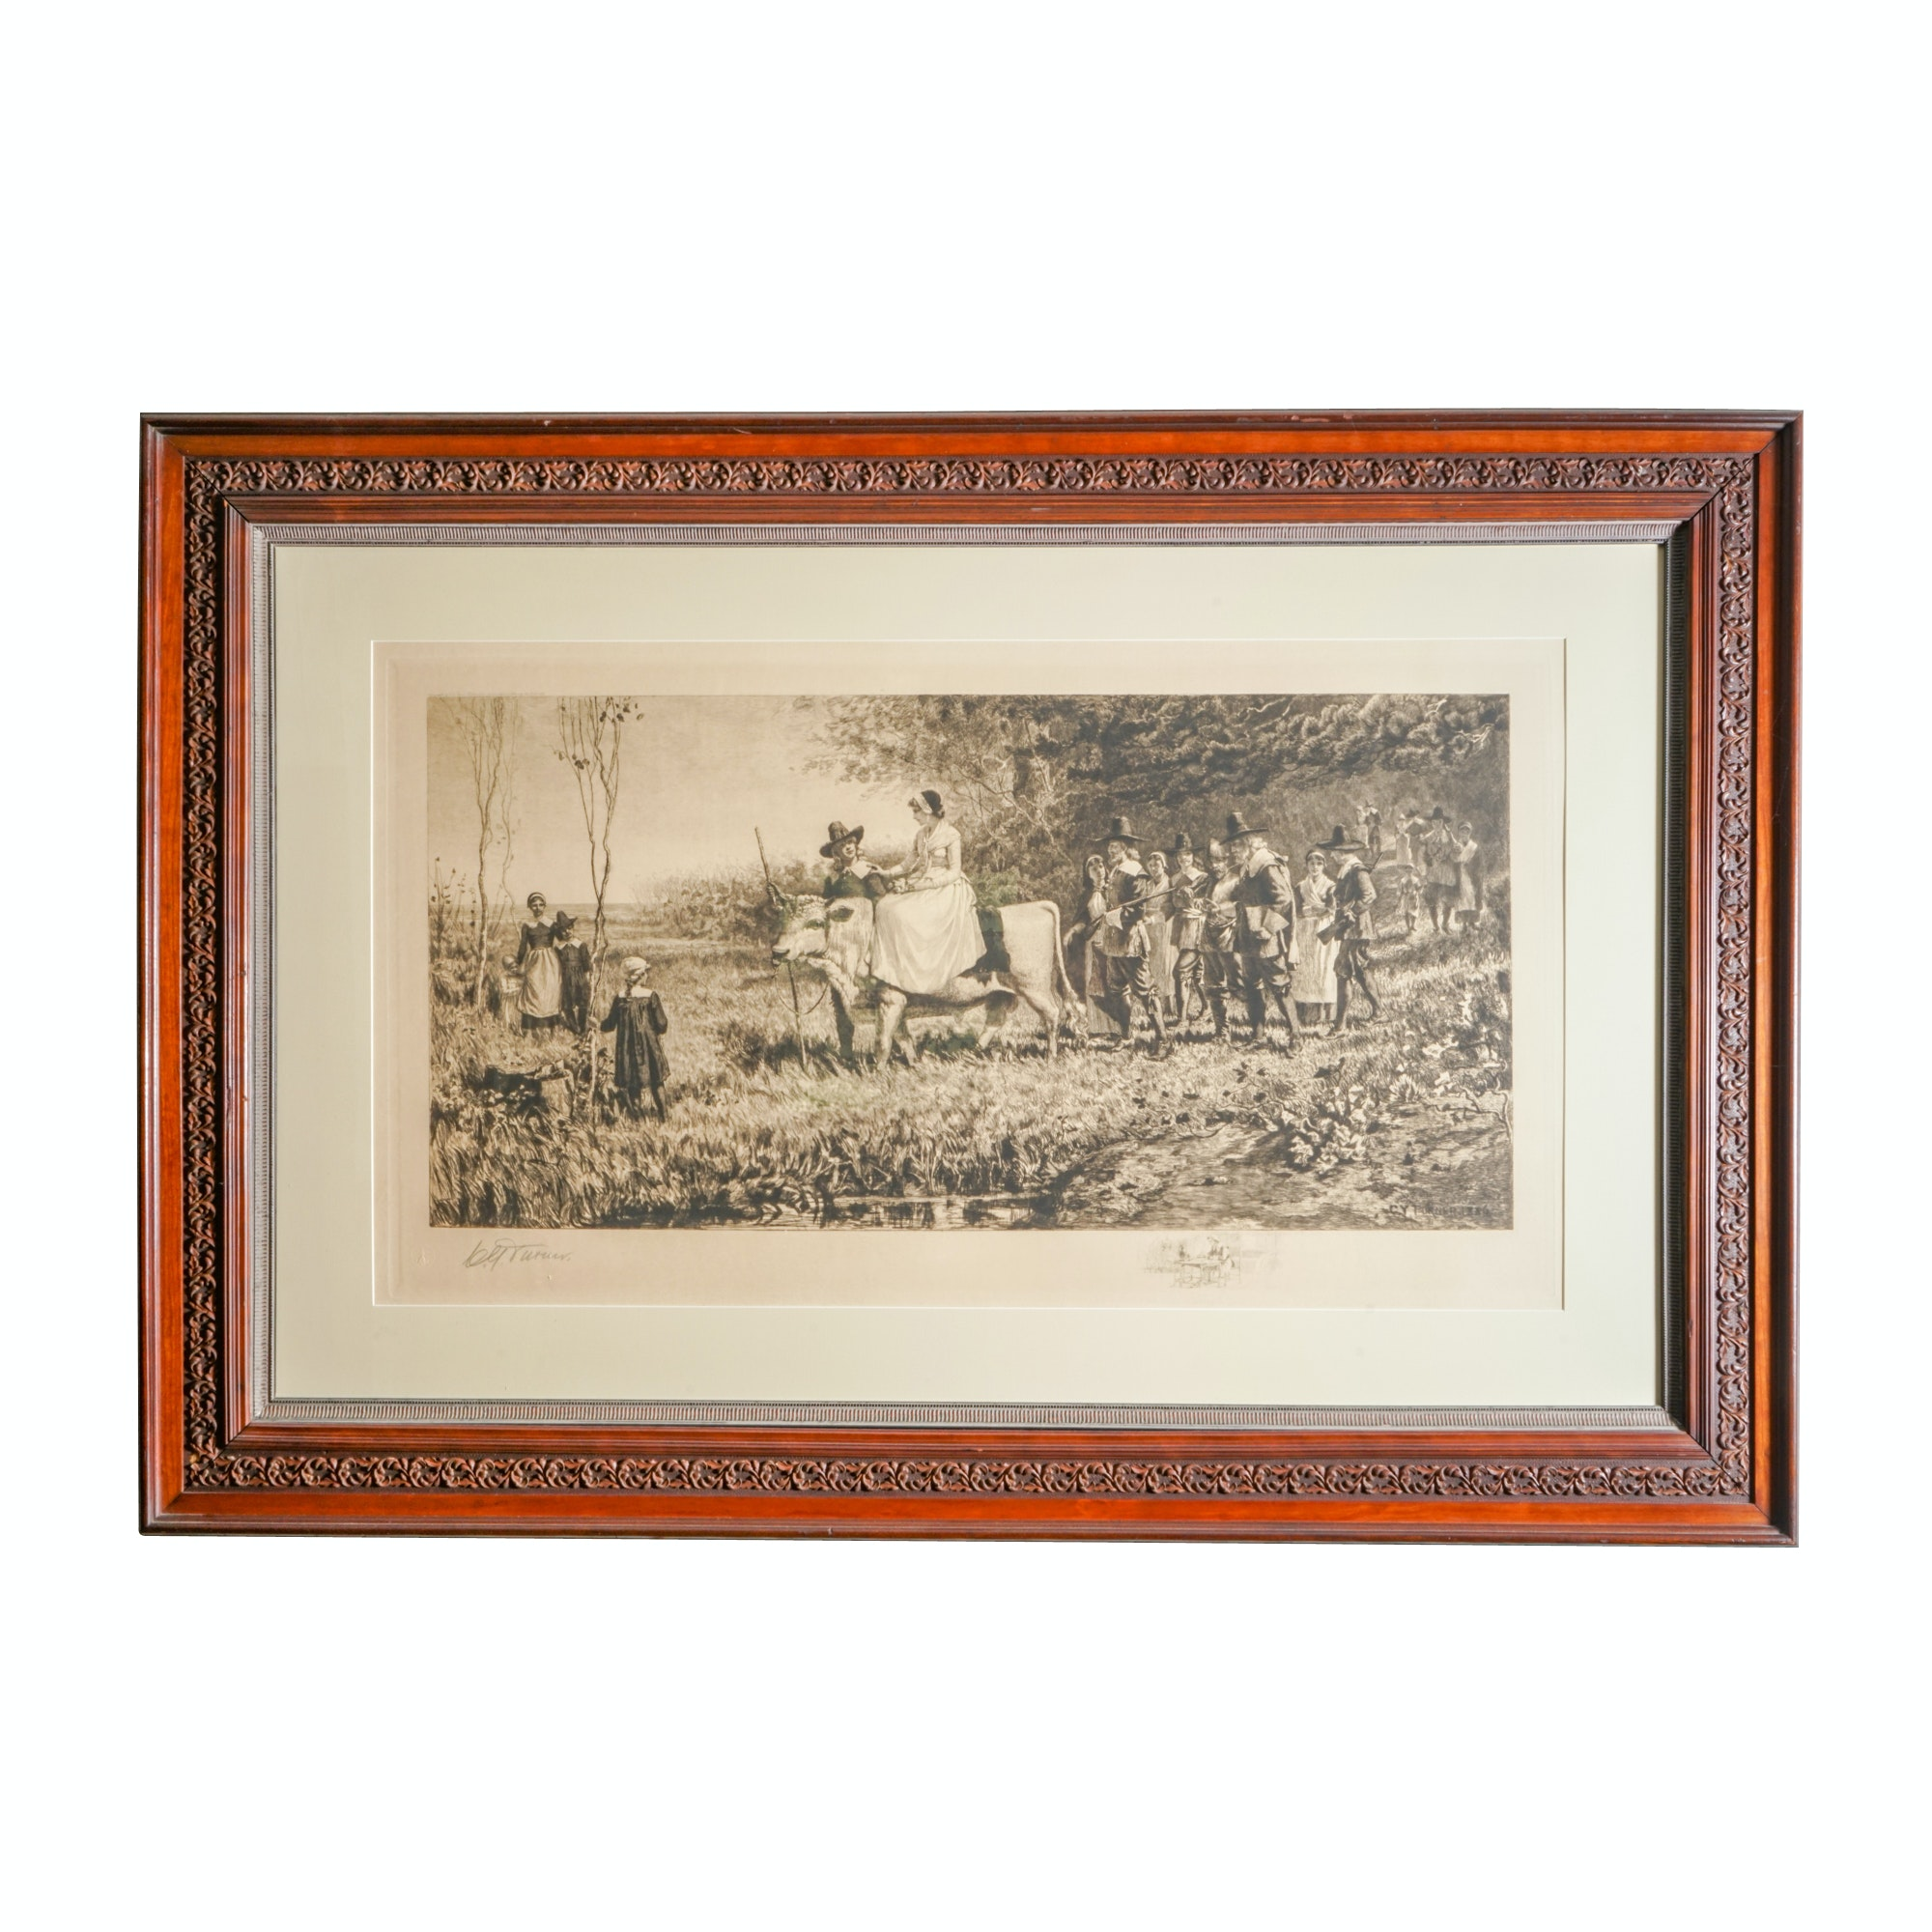 1887 Charles Yardley Turner Engraving